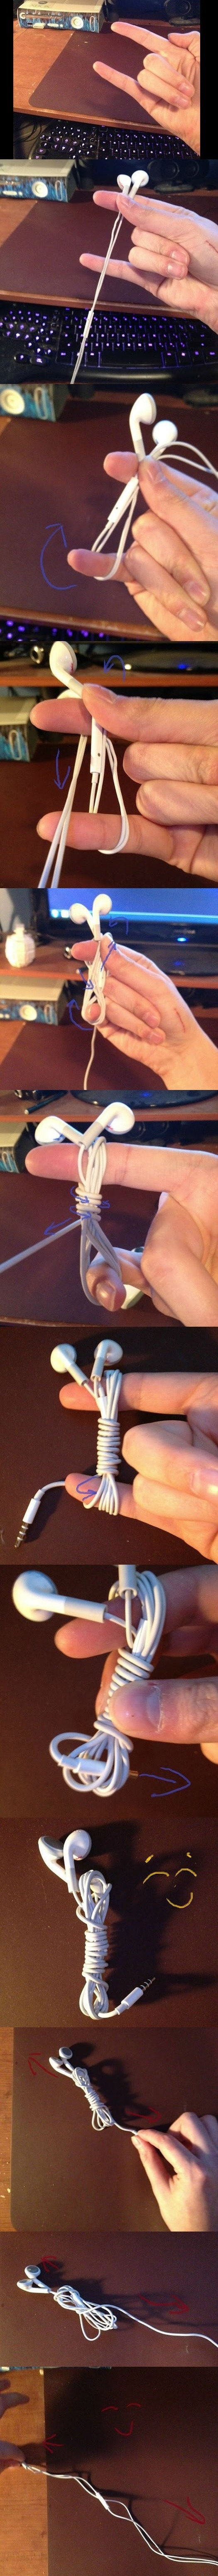 How to store your earphone wire ~ this oughta get me on the treadmill an hour earlier each morning!